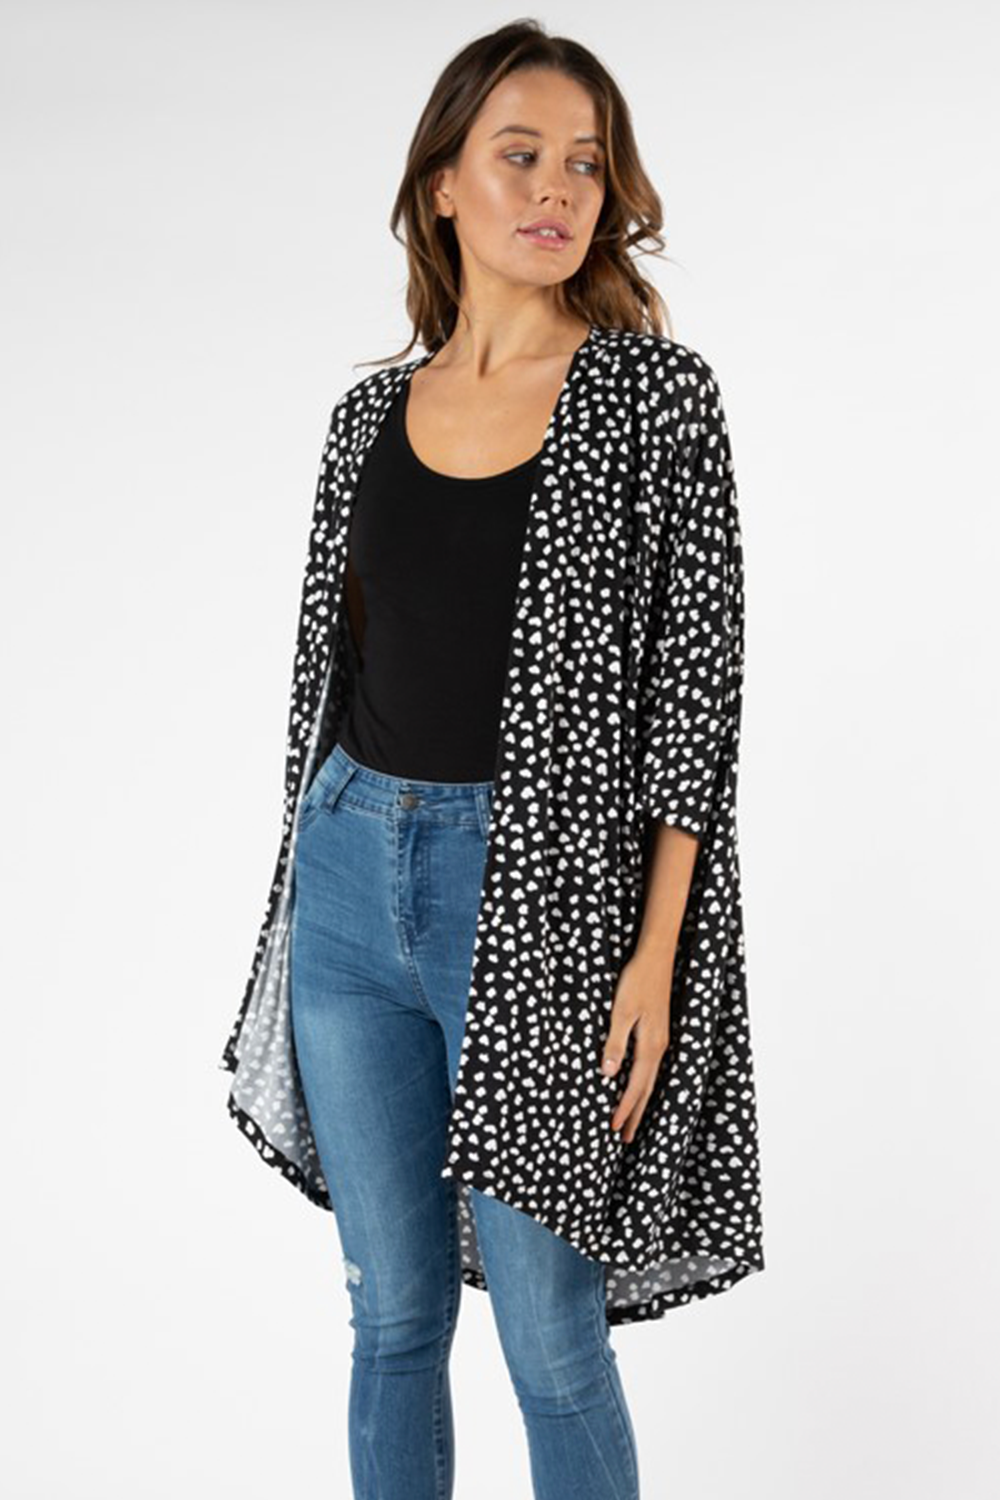 Valencia Cardigan by Betty Basics - heart ocelot